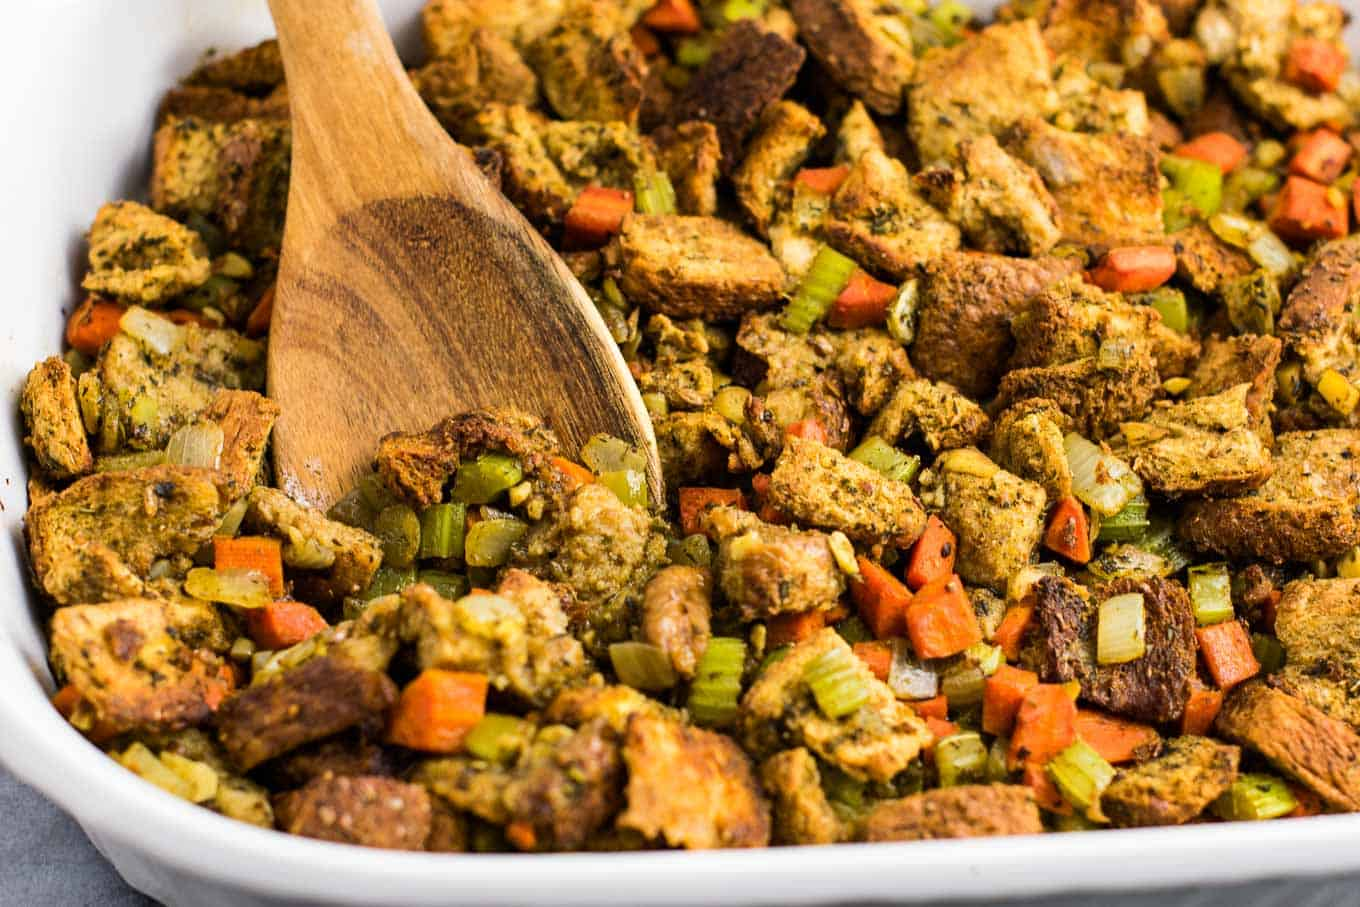 Vegan Stuffing for Thanksgiving - #vegan #stuffing #thanksgiving #veganrecipe #vegetarian #thanksgivingstuffing #glutenfree